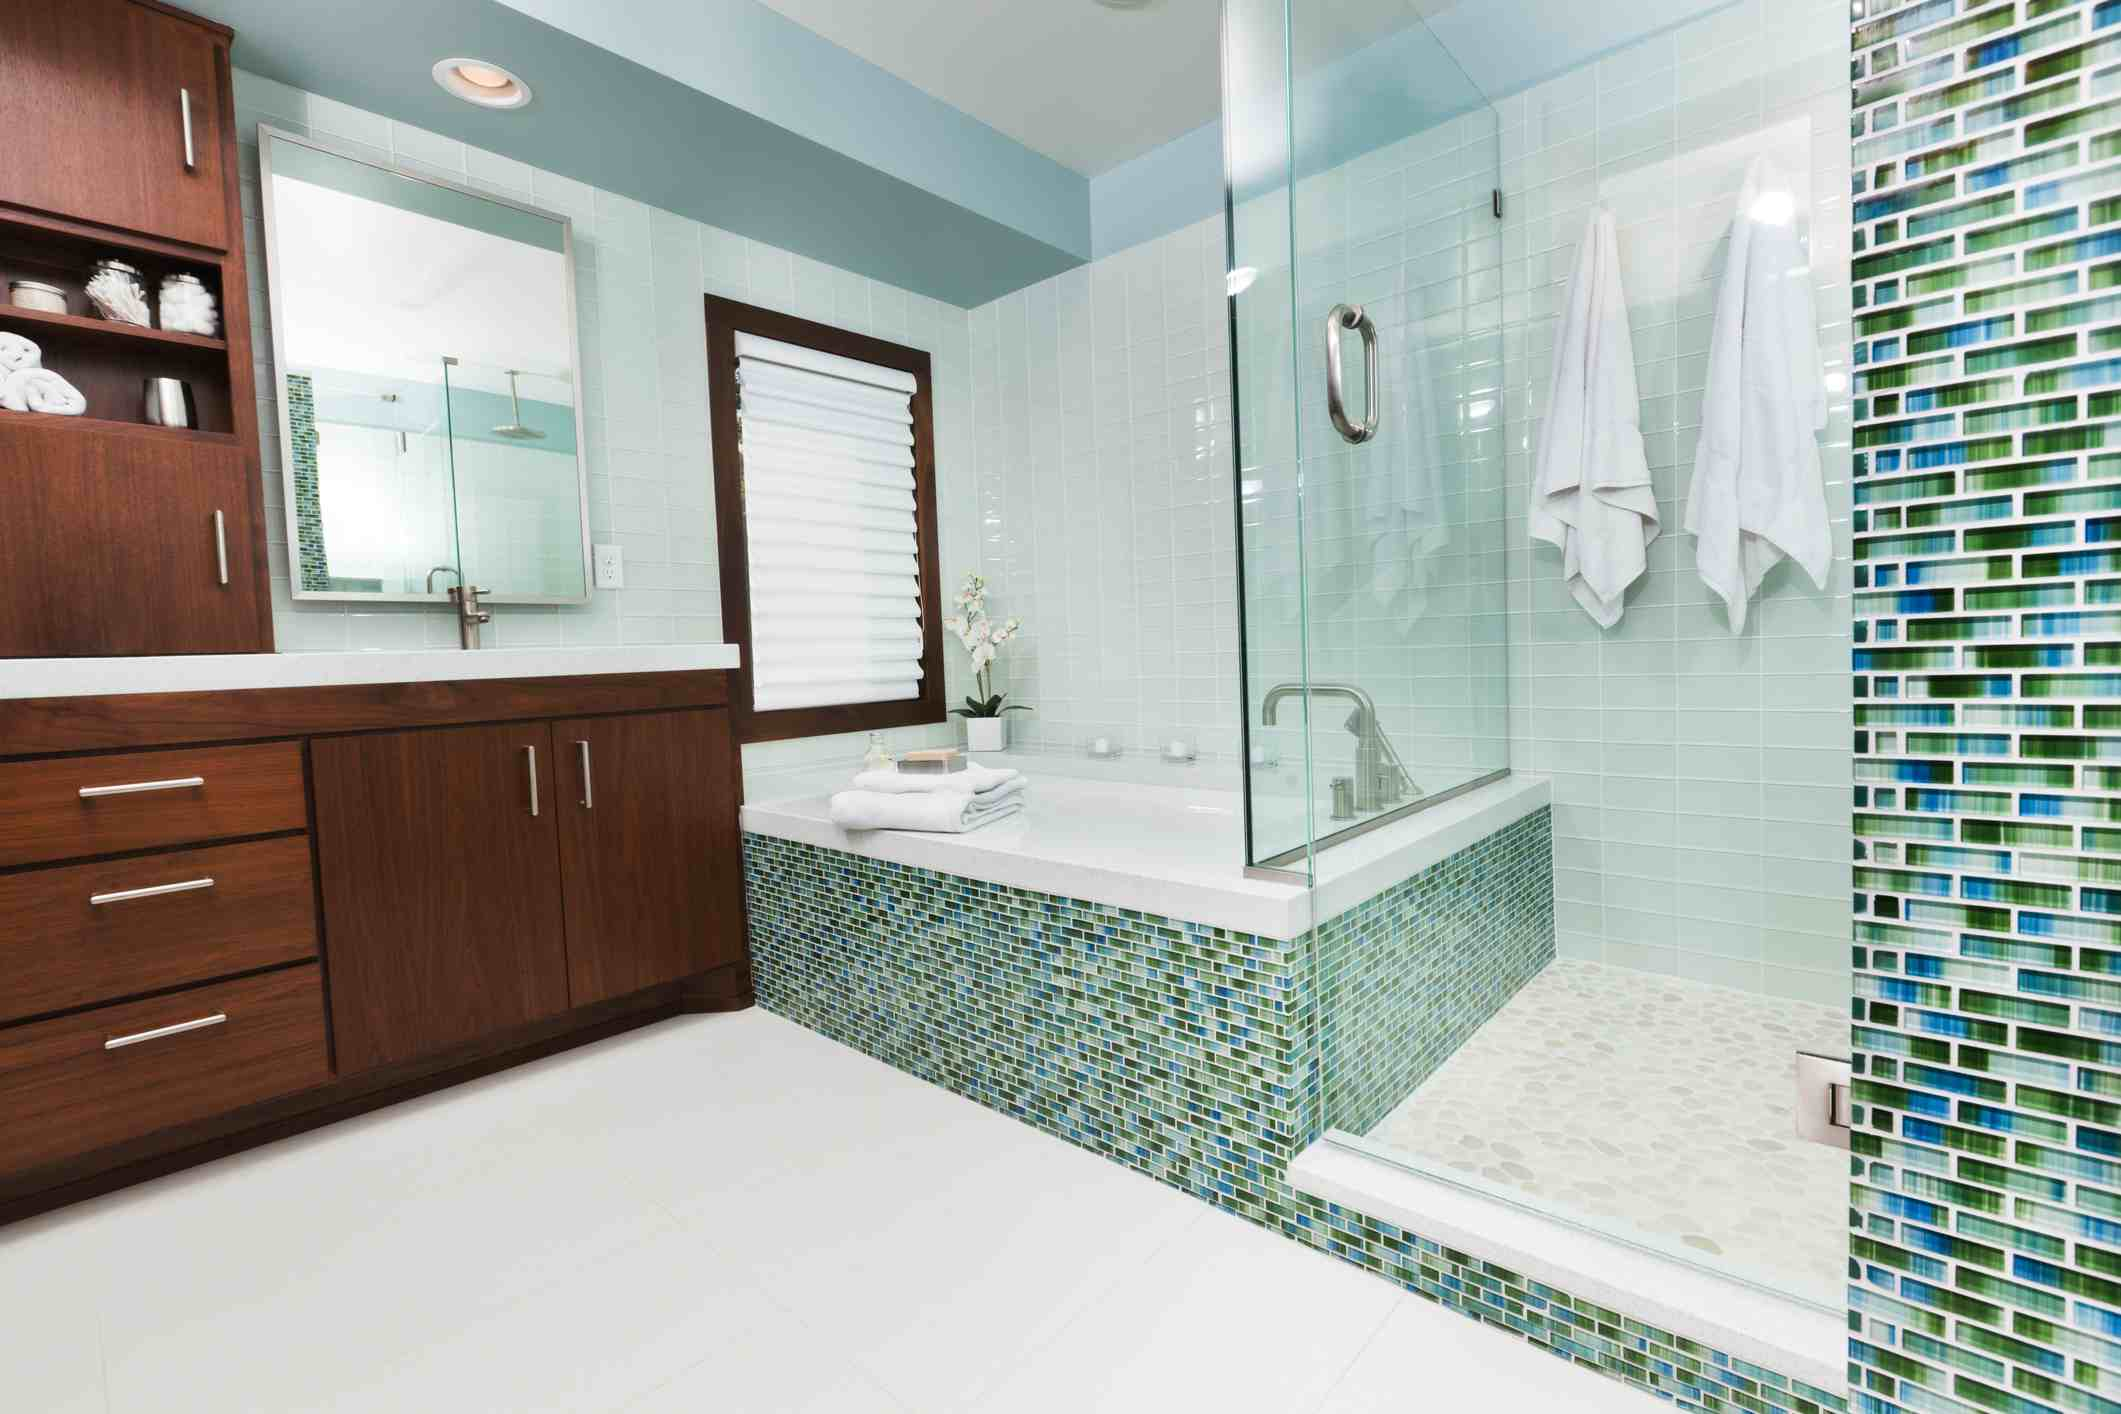 Bathroom Wall Tile Guide From Porcelain to Mosaics